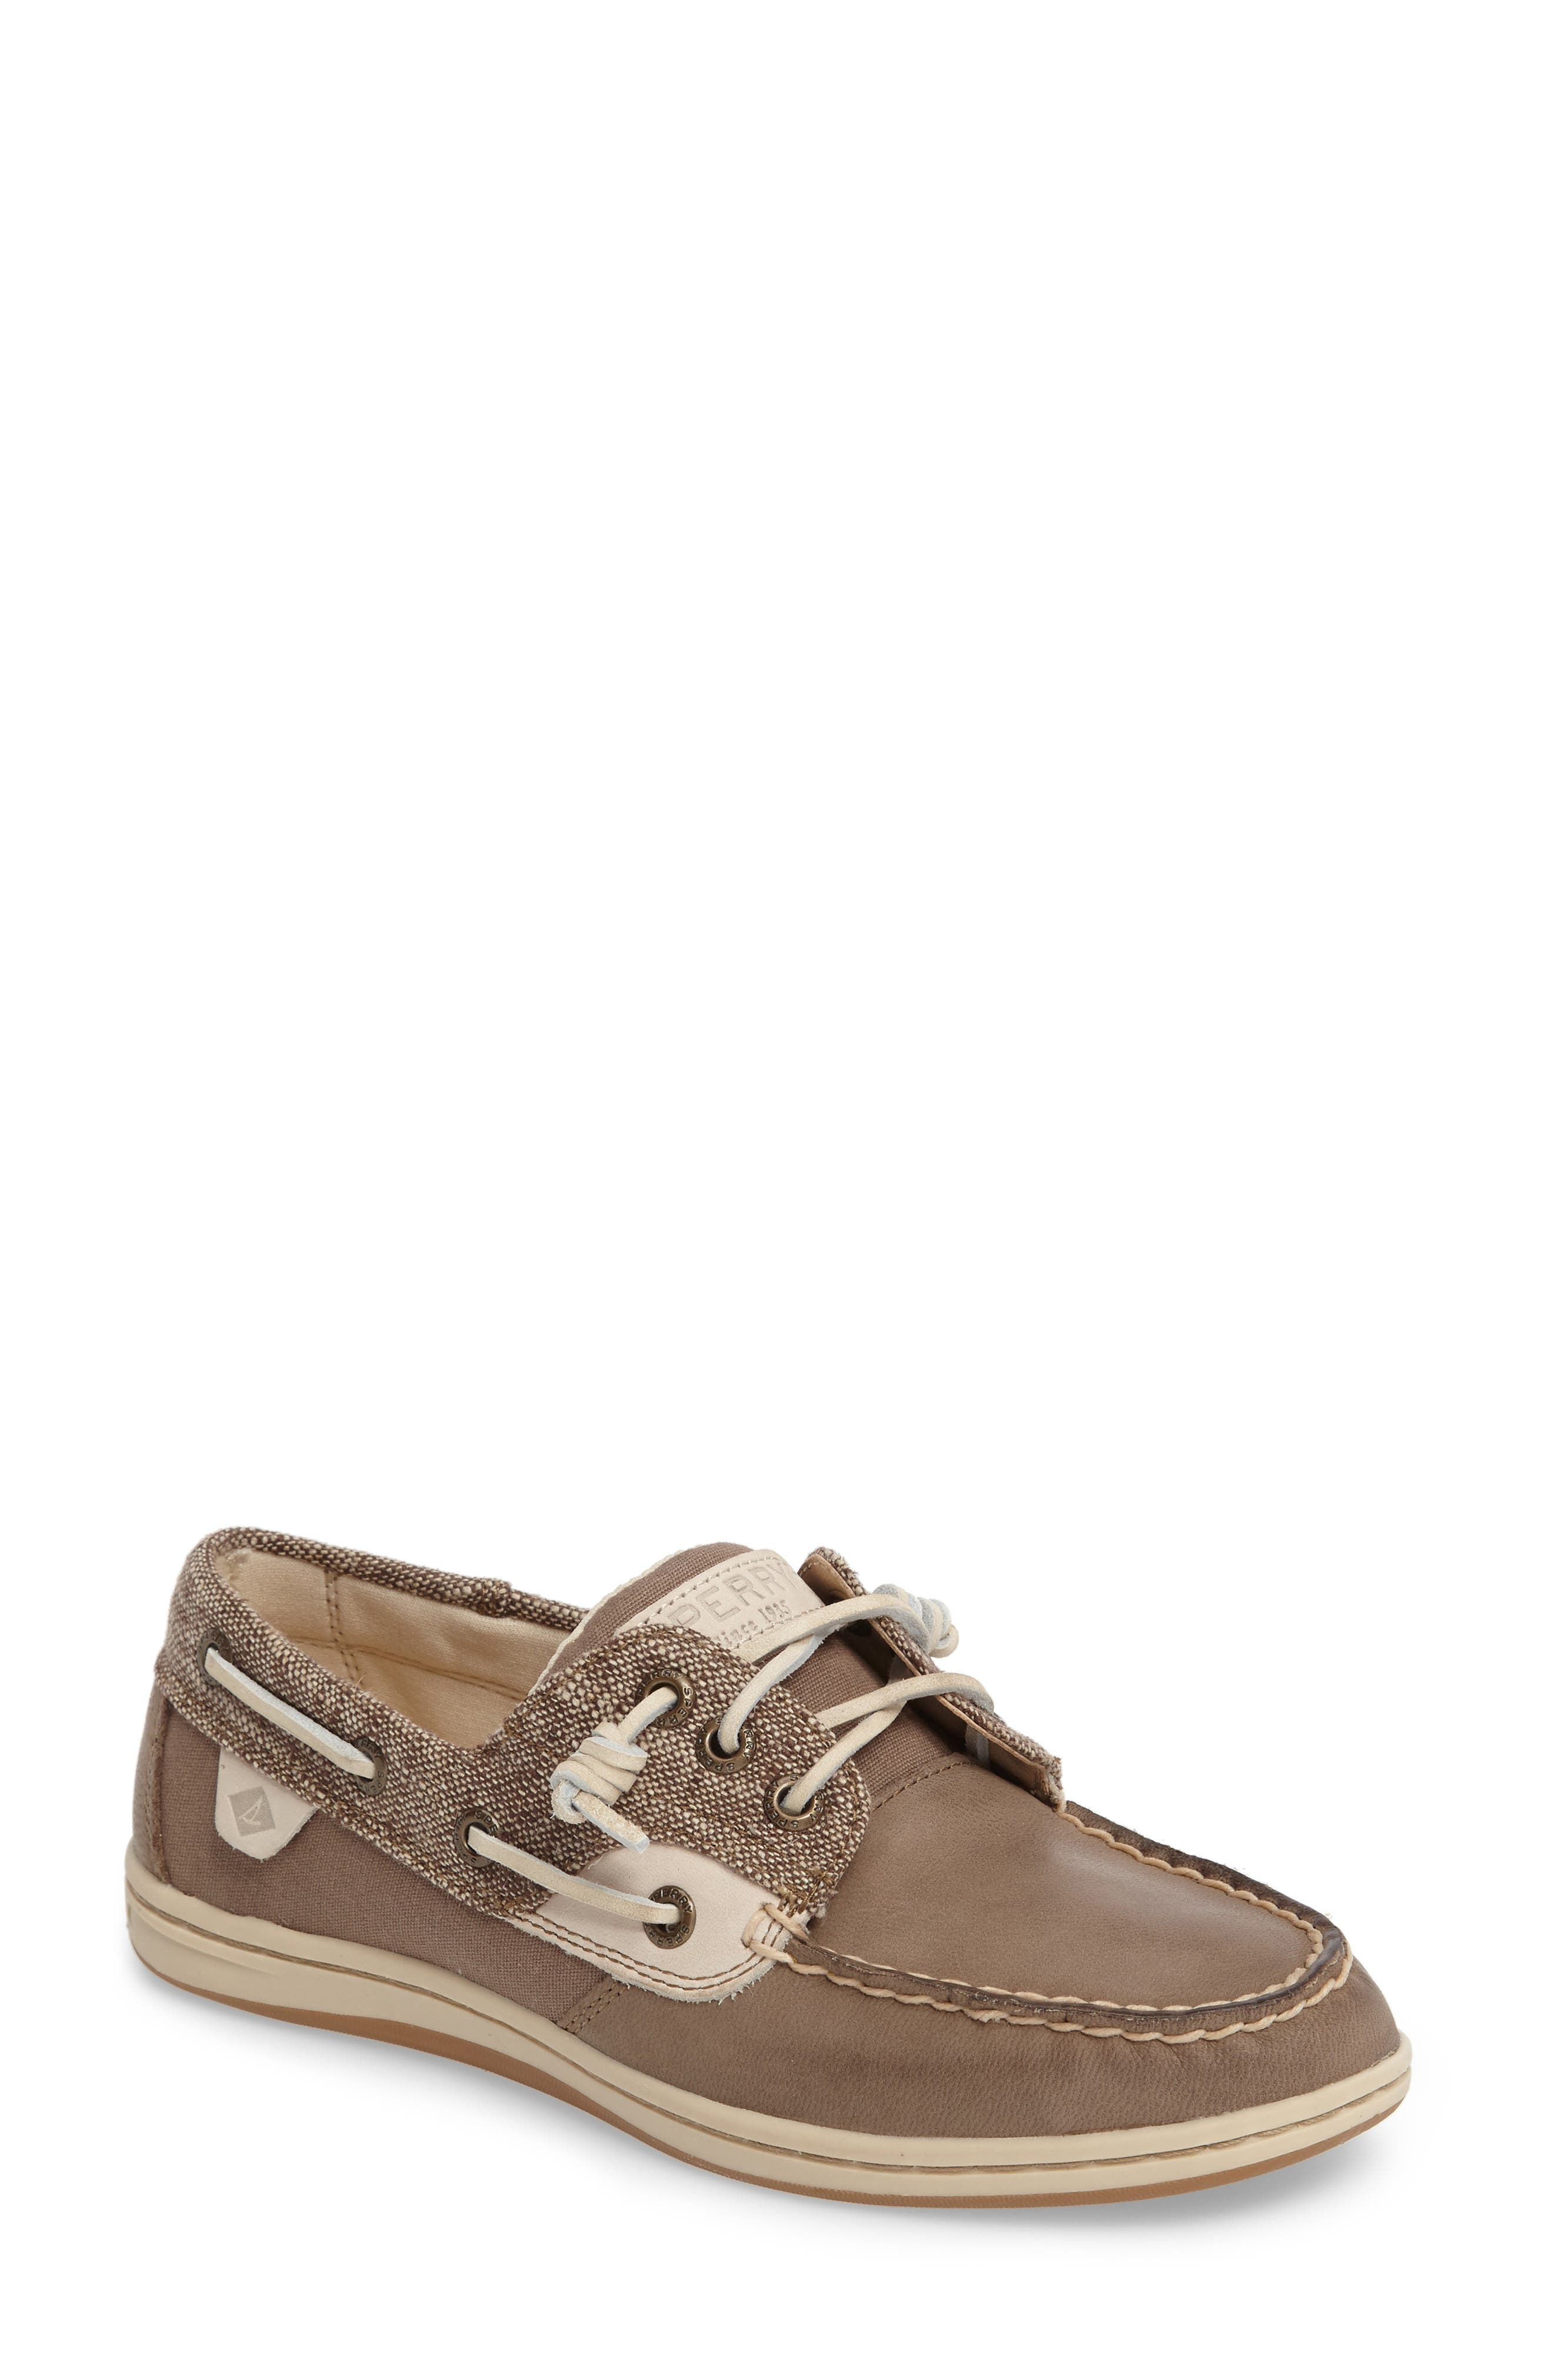 Alternate Image 1 Selected - Sperry 'Songfish' Boat Shoe (Women)